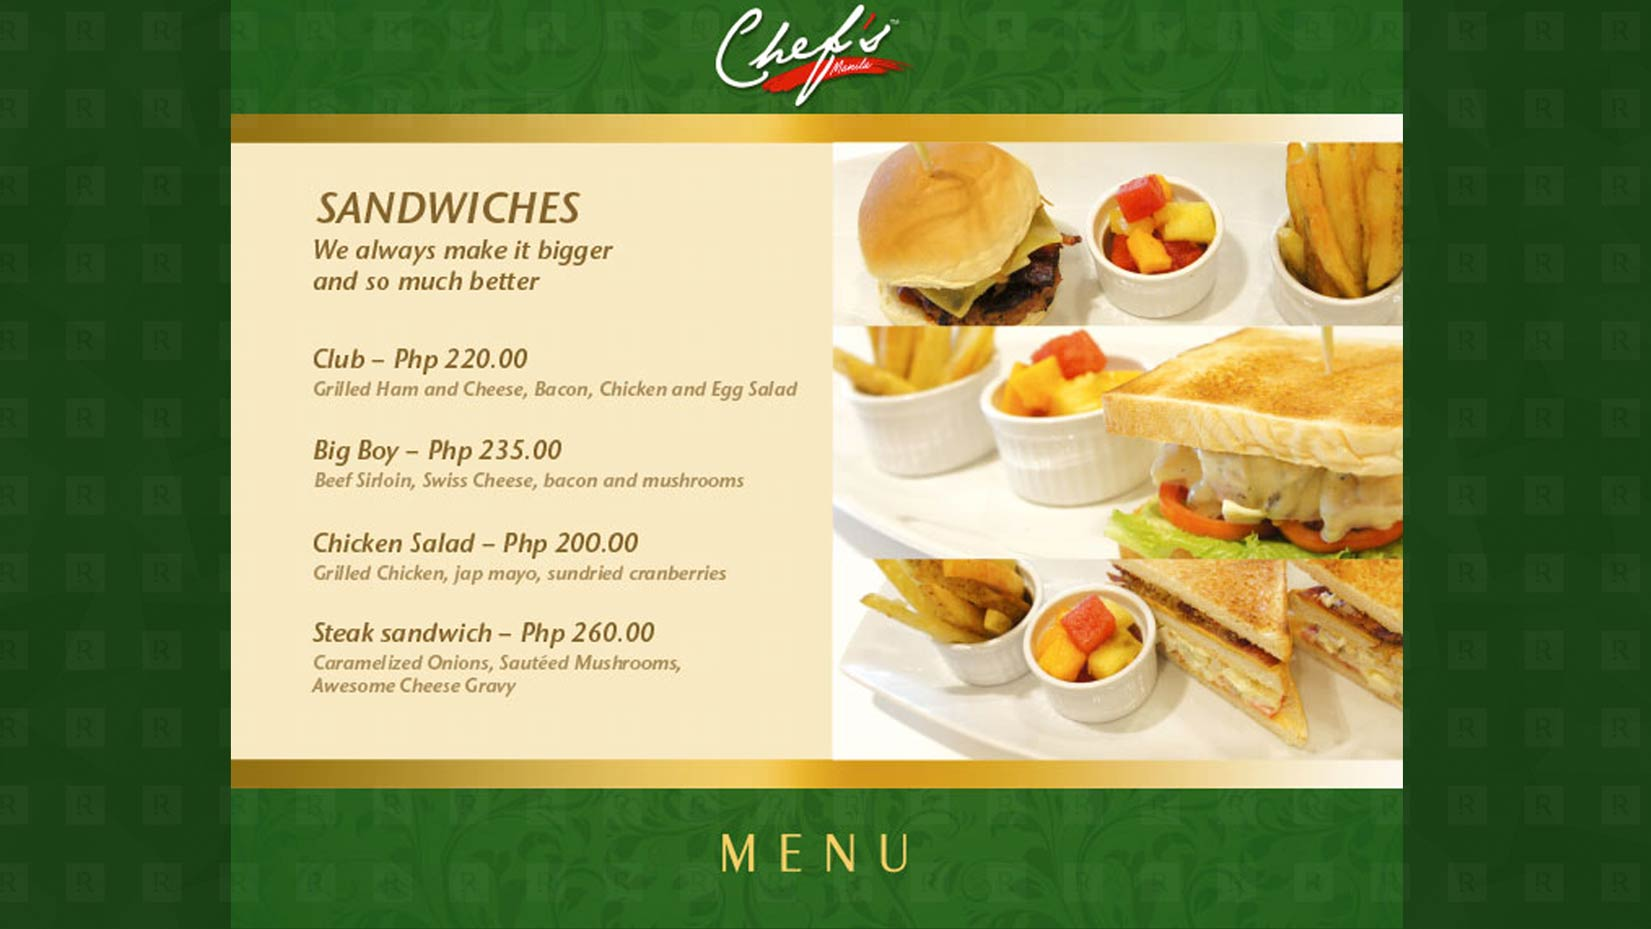 The Chef Manila Menu